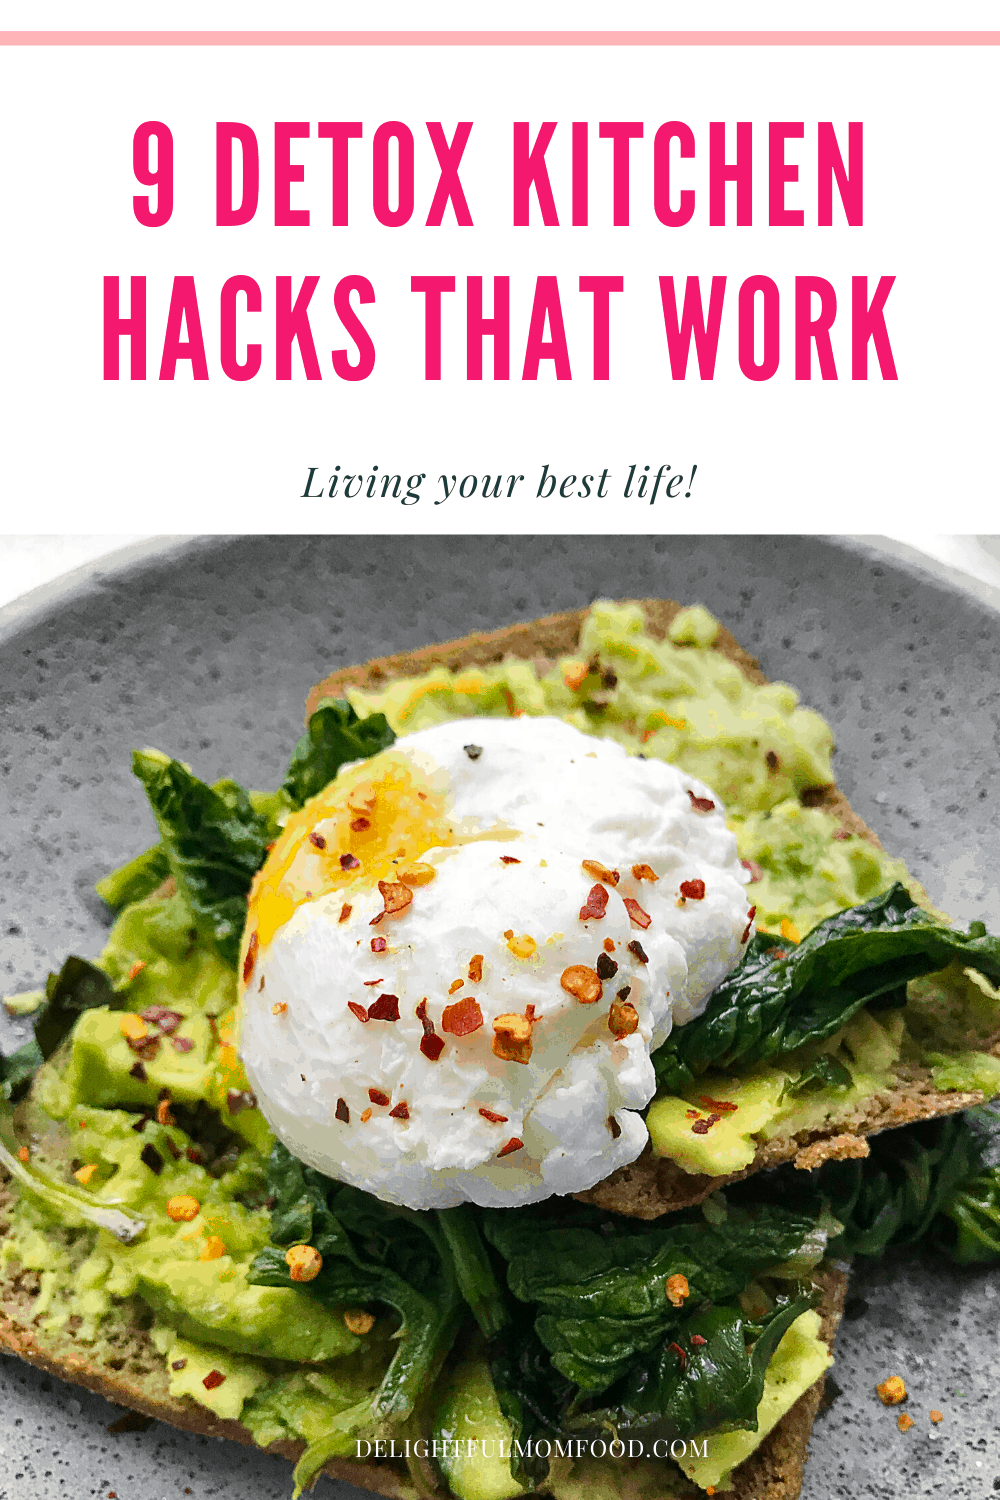 The key to committing to any diet or program successfully is planning and preparation. One of the easiest ways to ensure you commit to detoxing your body, is to detox your kitchen first. These handy healthy kitchen hacks are a great starting point to de-clutter your home and body! In return, your mind will feel more free, time will be served more efficiently and life blossoms and transforms. #detox #kitchenhacks #healthyliving #weightloss #bodycleanse #cleaneating #delightfulmomfood | Check it out at Delightful Mom Food